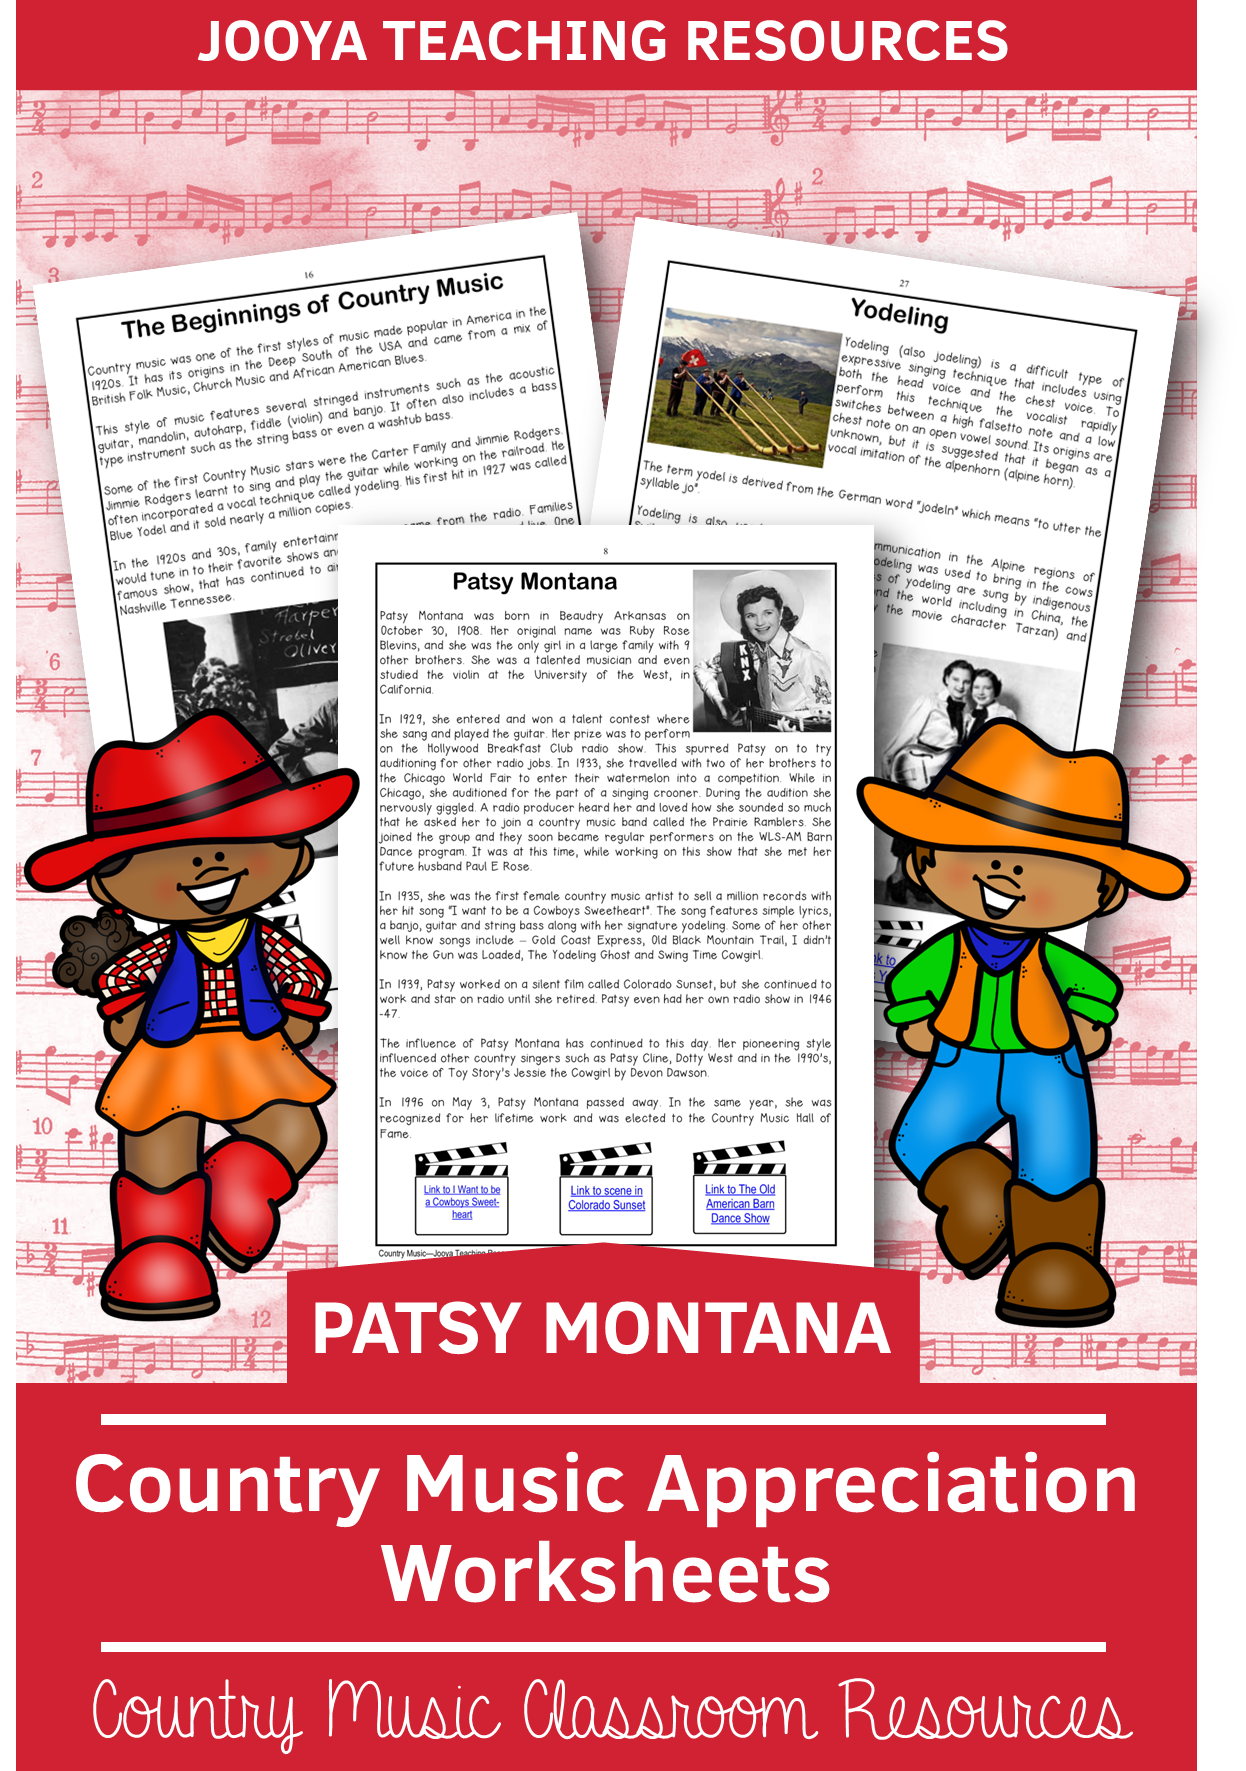 Country Music Appreciation Worksheets